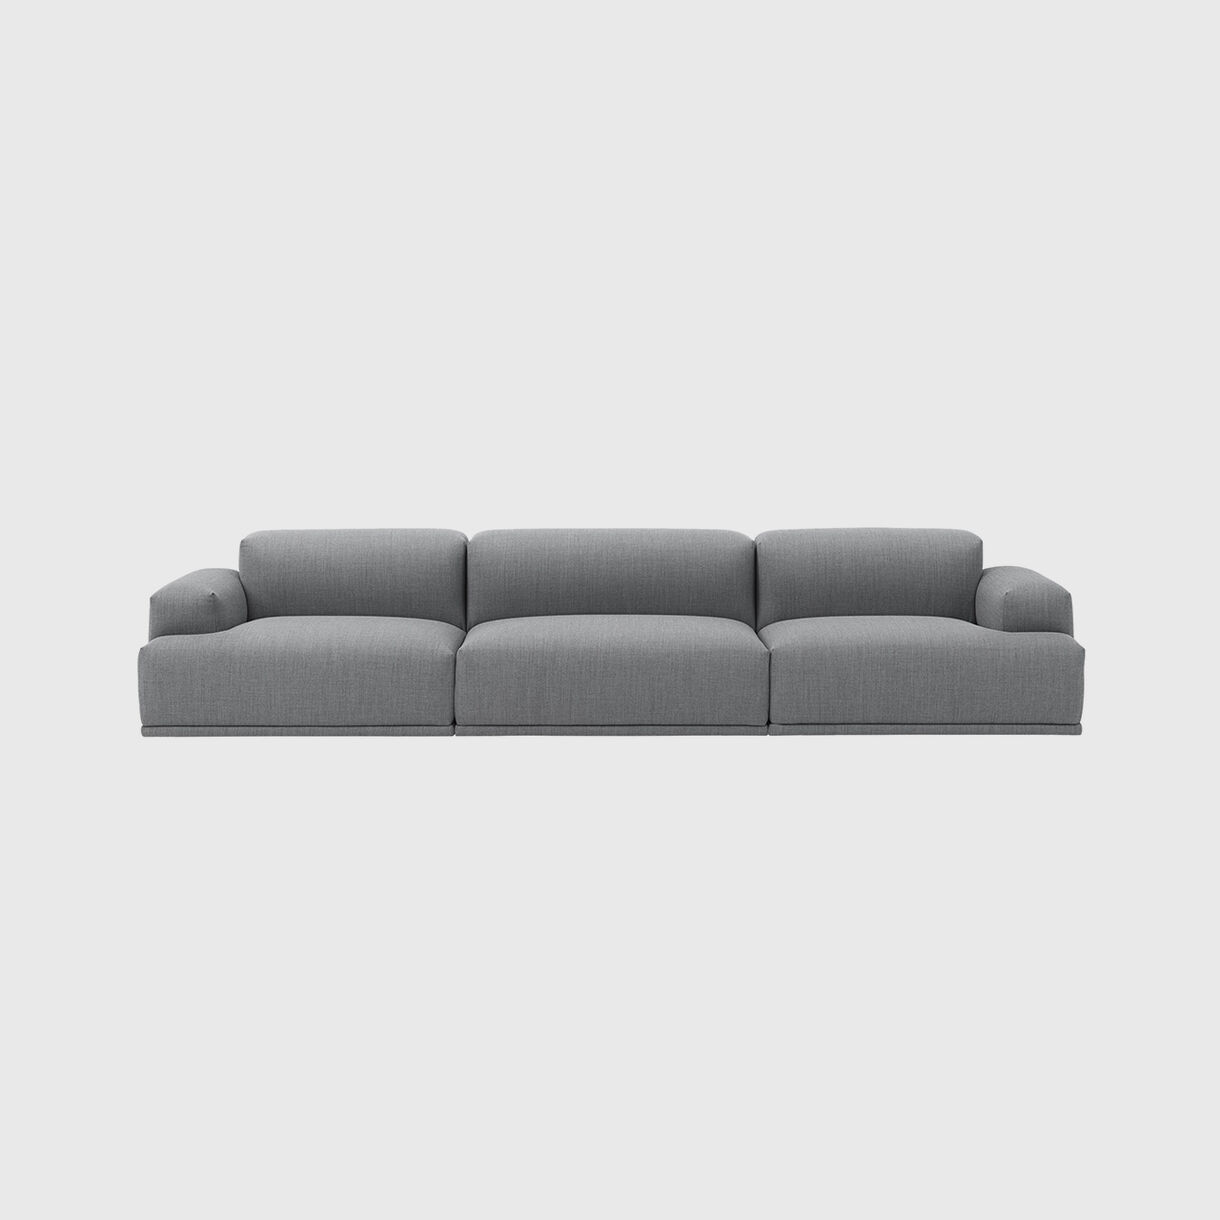 Connect Modular Sofa, 3 Seater, Fiord 151